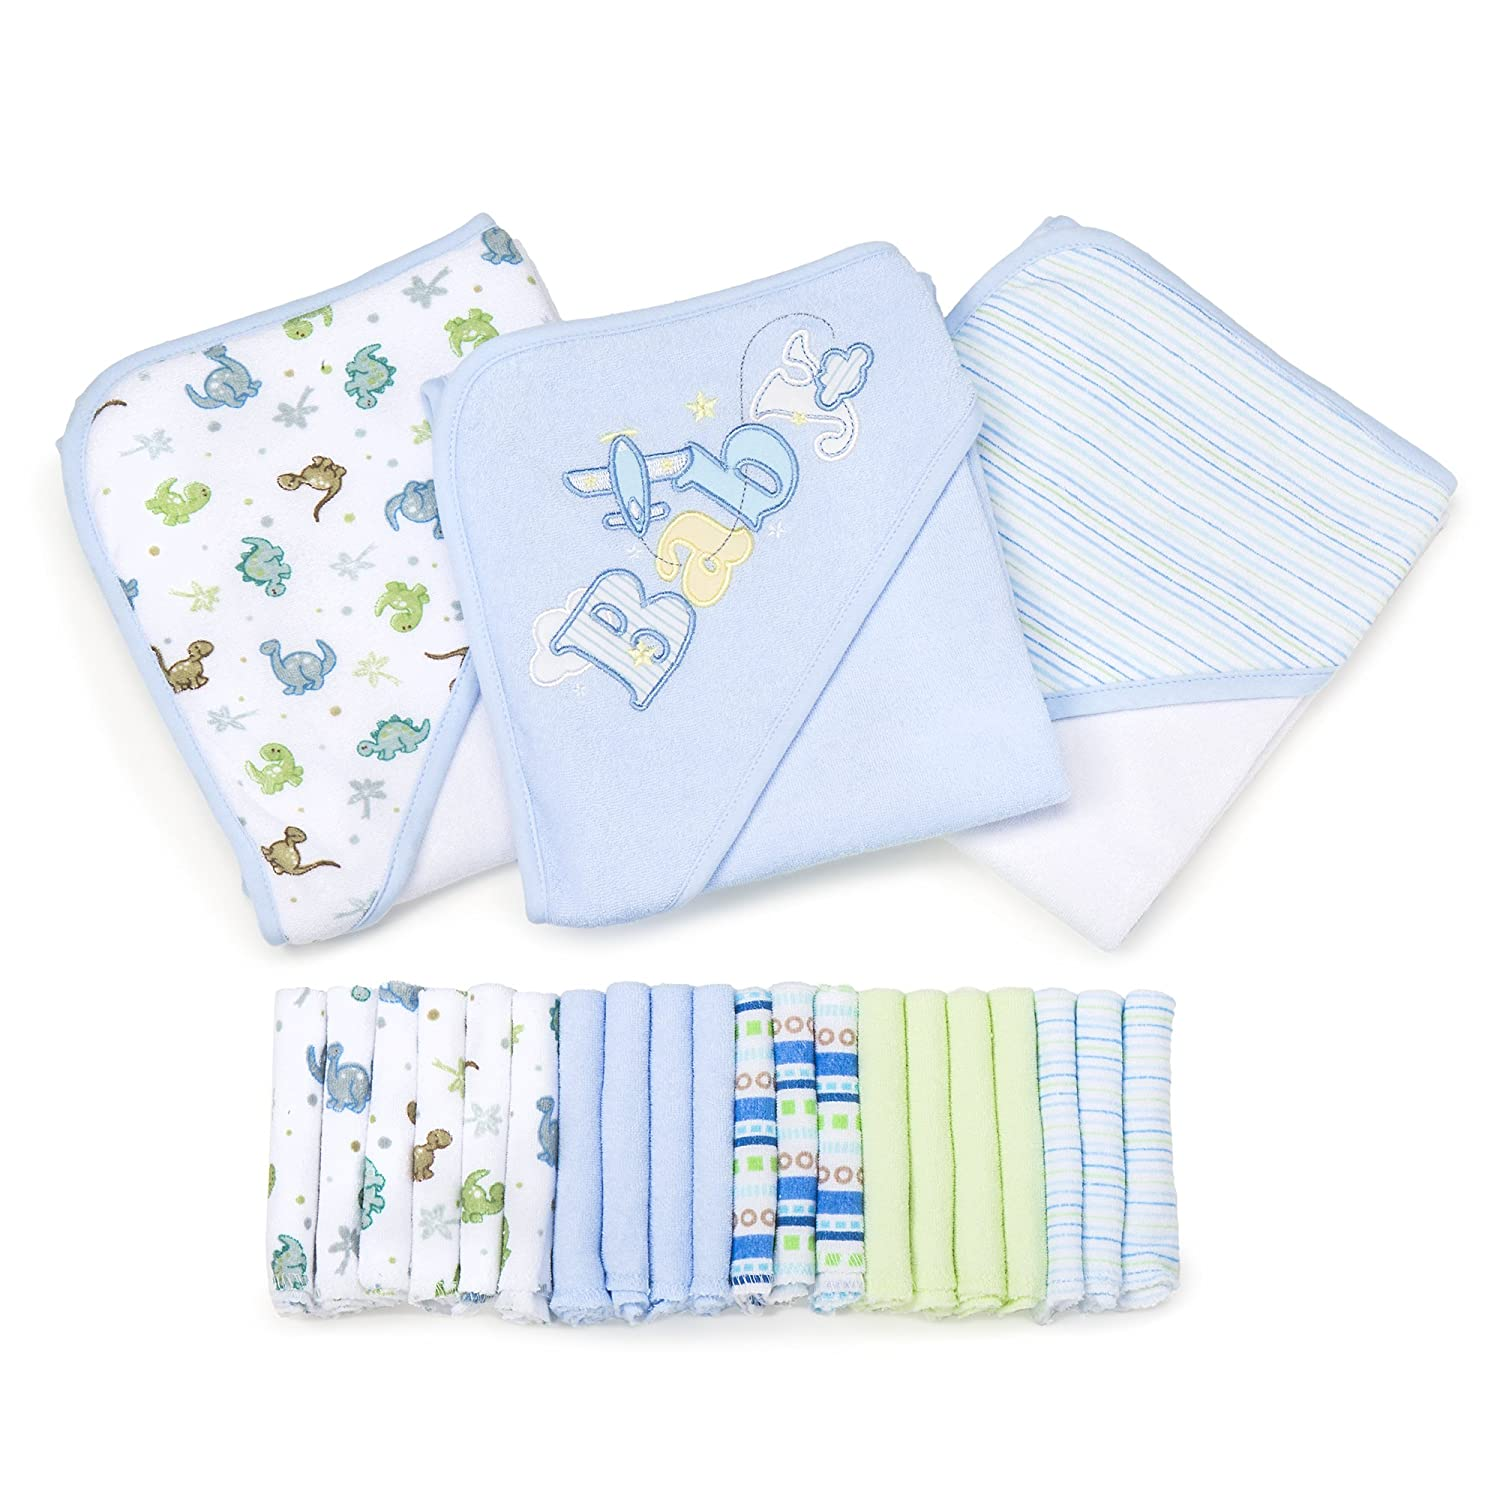 Amazon.com : Spasilk 23-Piece Essential Baby Bath Gift Set, Blue : Baby